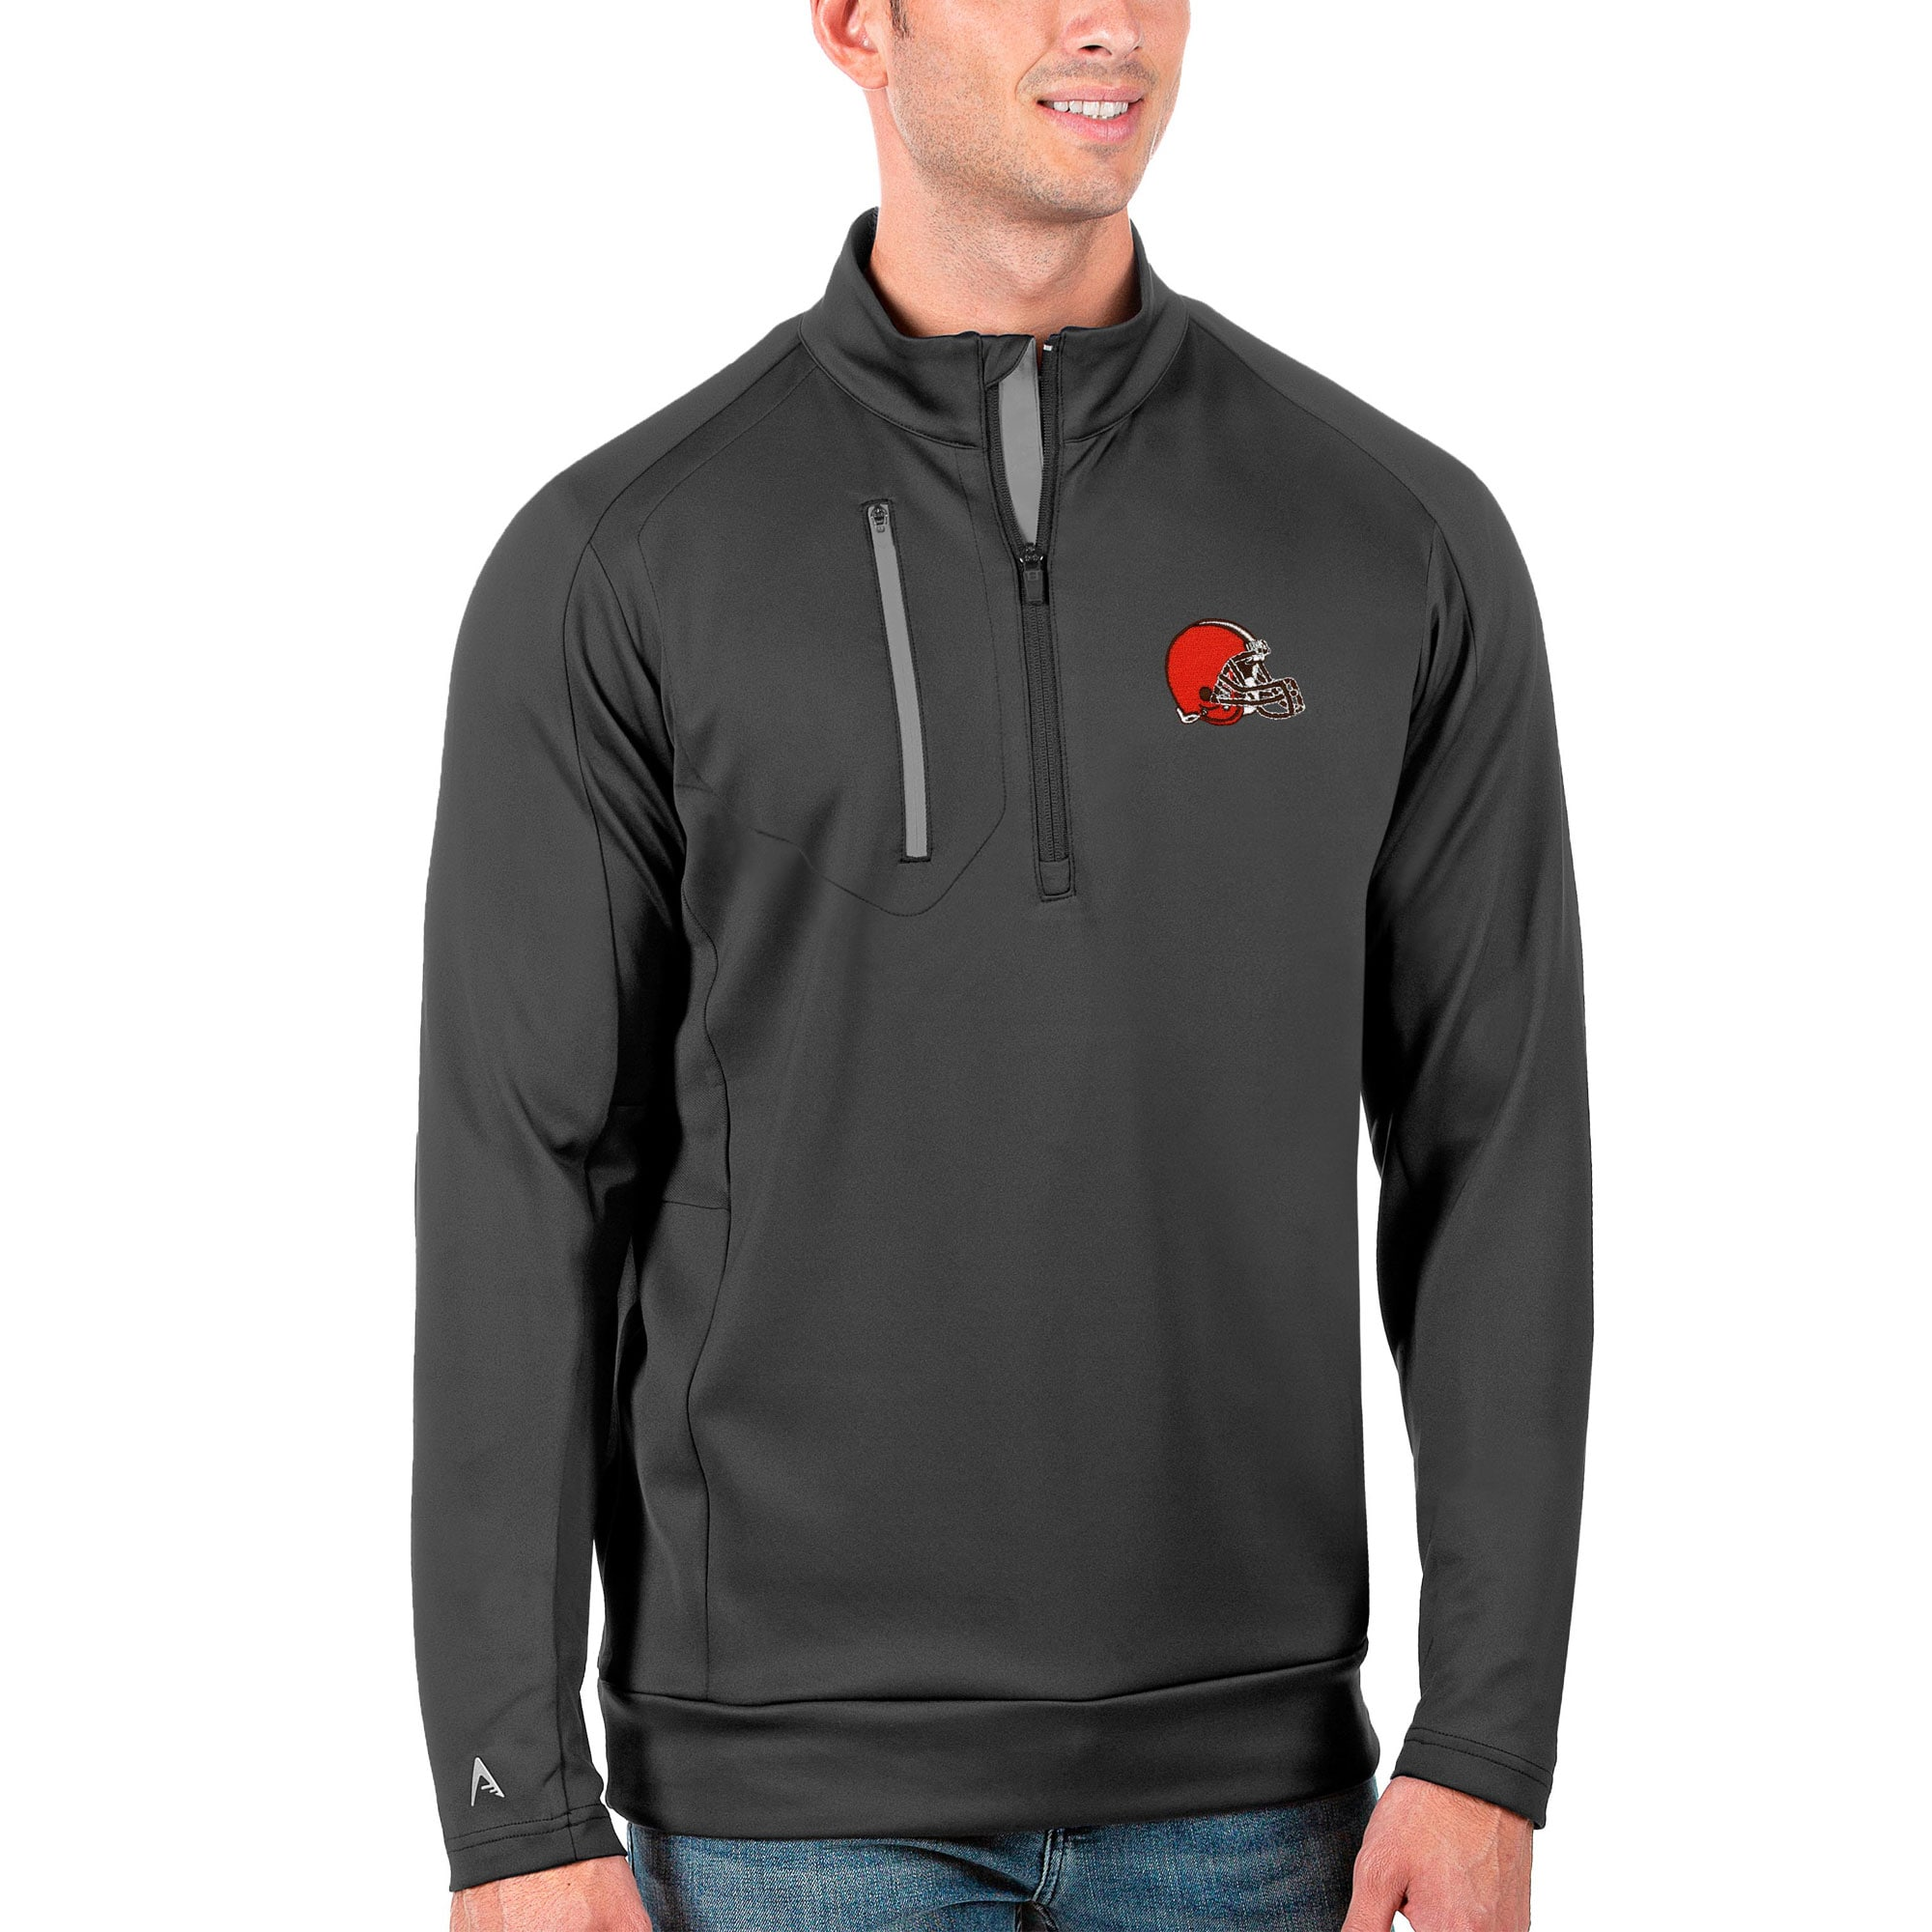 Cleveland Browns Antigua Generation Quarter-Zip Pullover Jacket - Charcoal/Silver